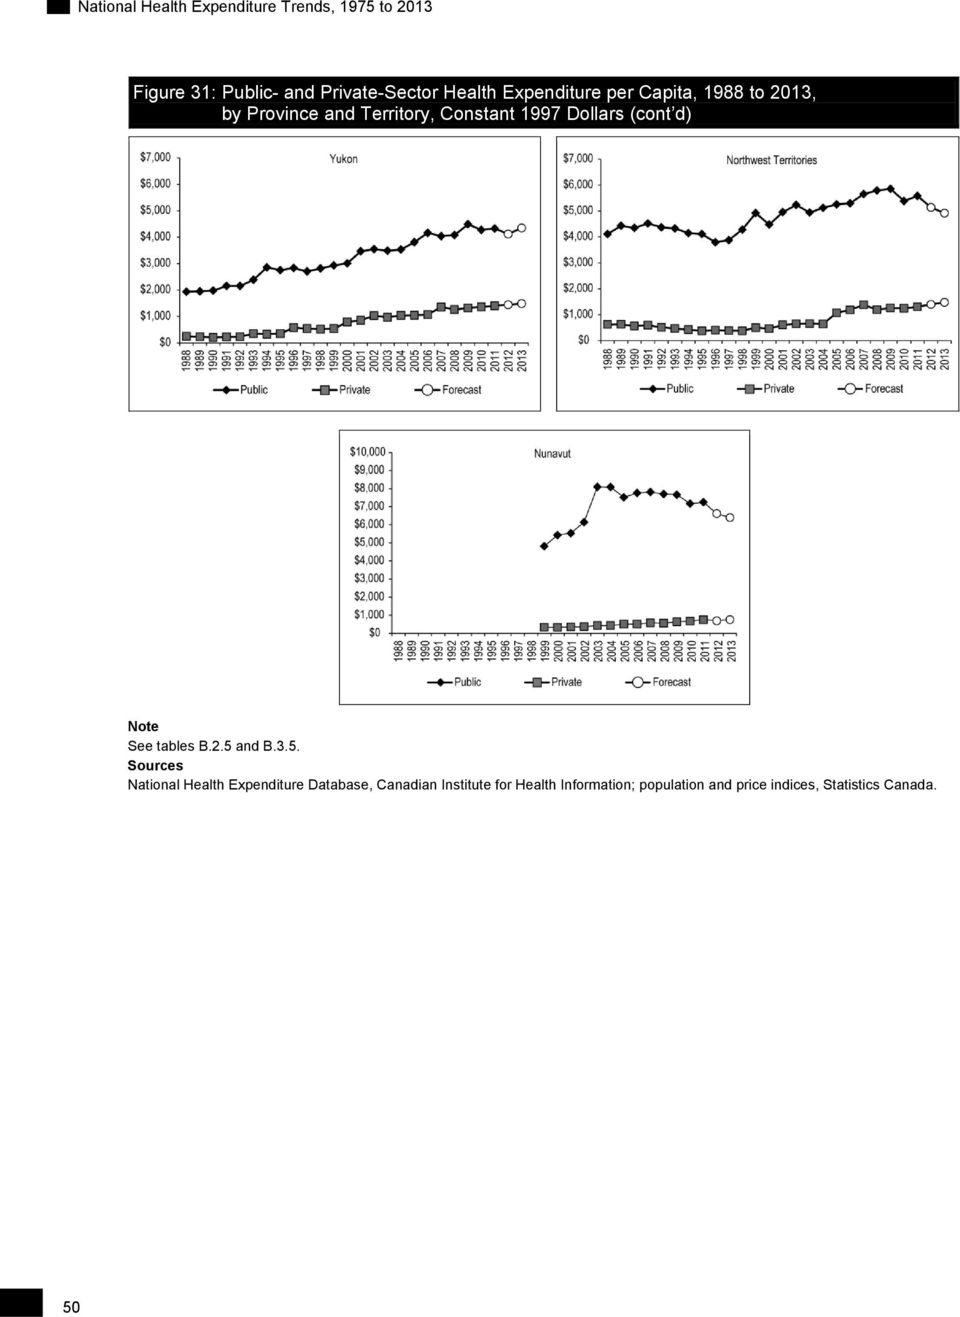 2.5 and B.3.5. Sources National Health Expenditure Database, Canadian